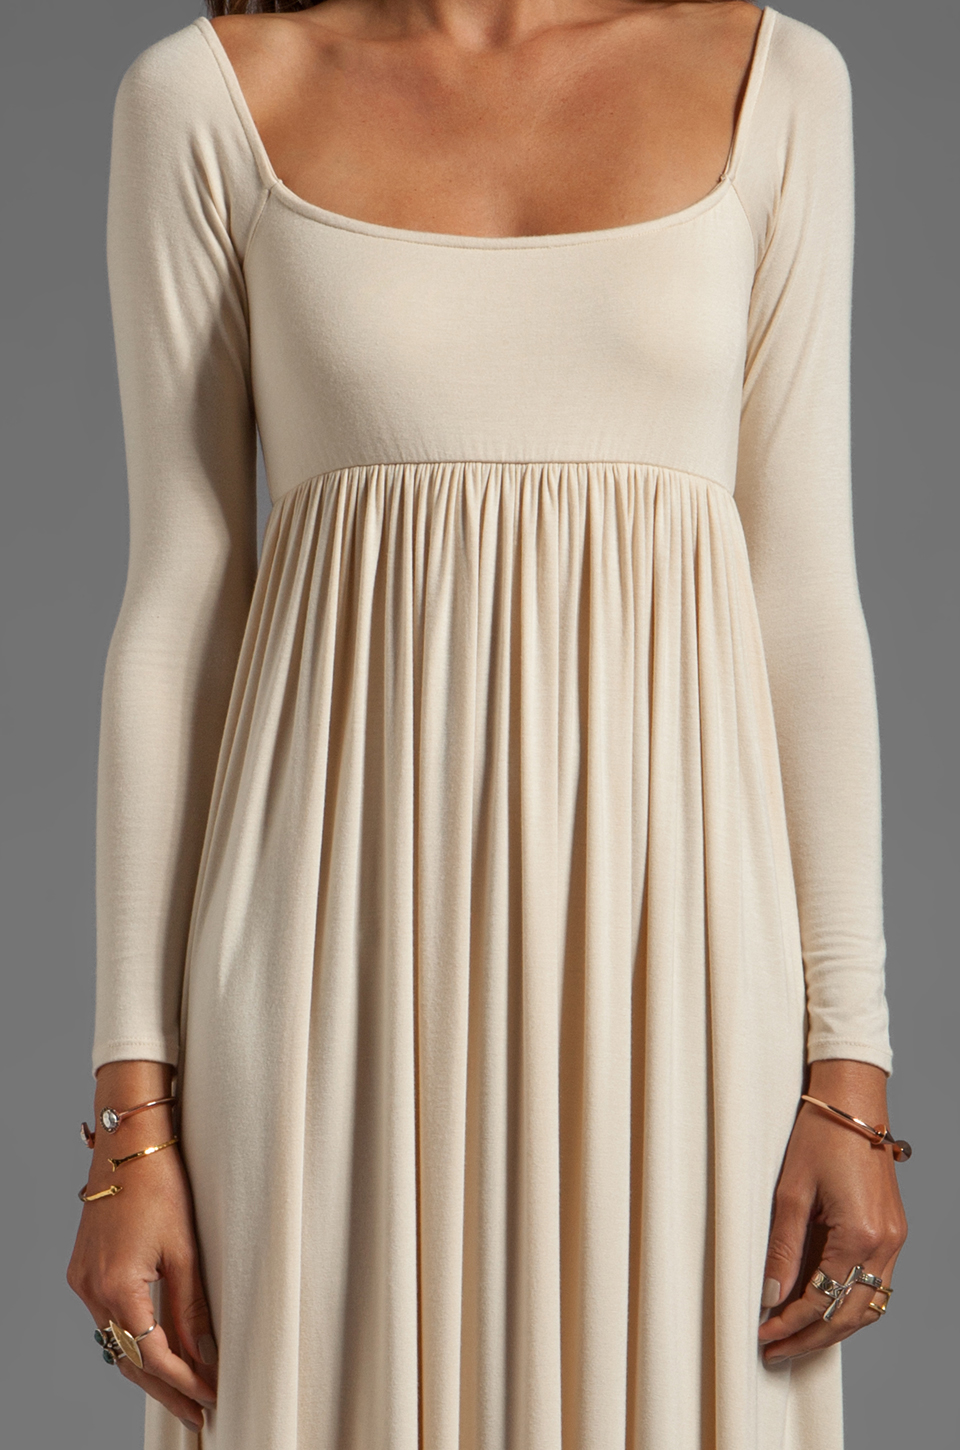 Rachel pally isa pleated dress in natural lyst gallery ombrellifo Image collections